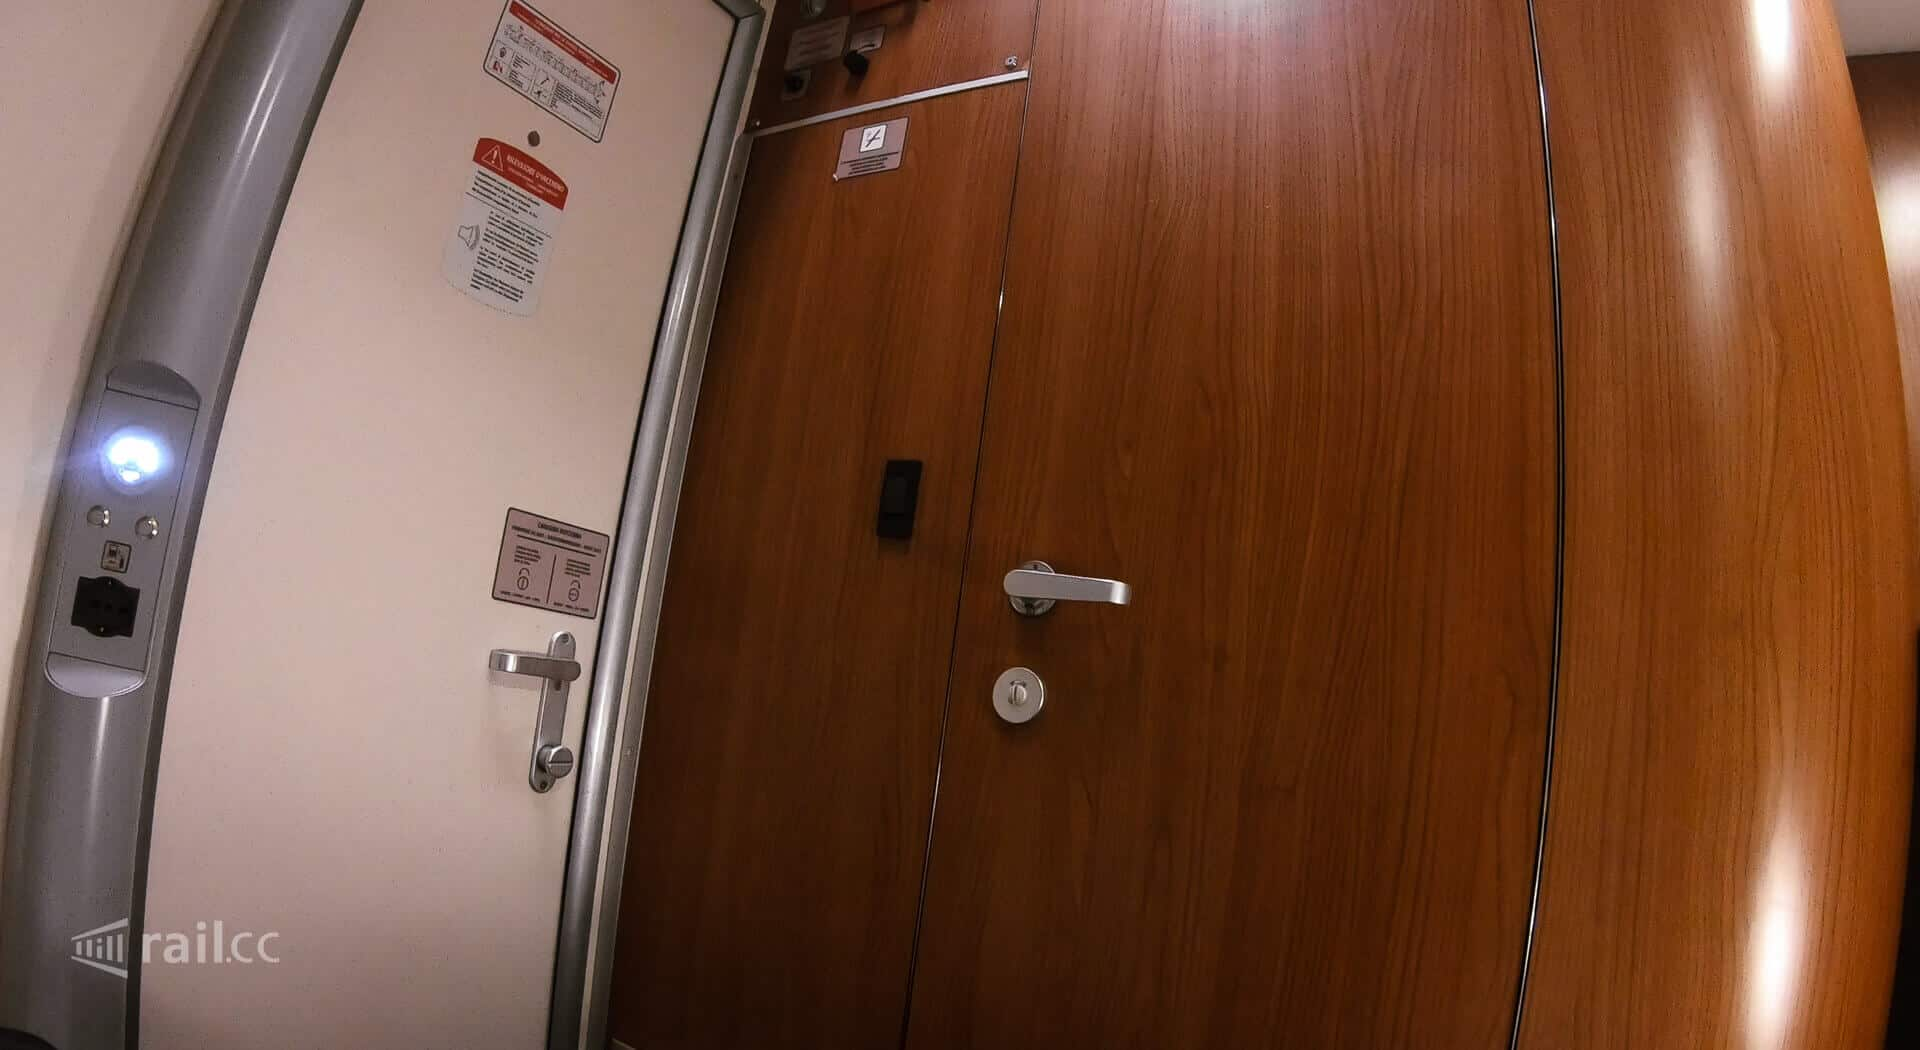 The door in a Thello sleeper compartment. It is possible to lock it from inside, but not from outside.